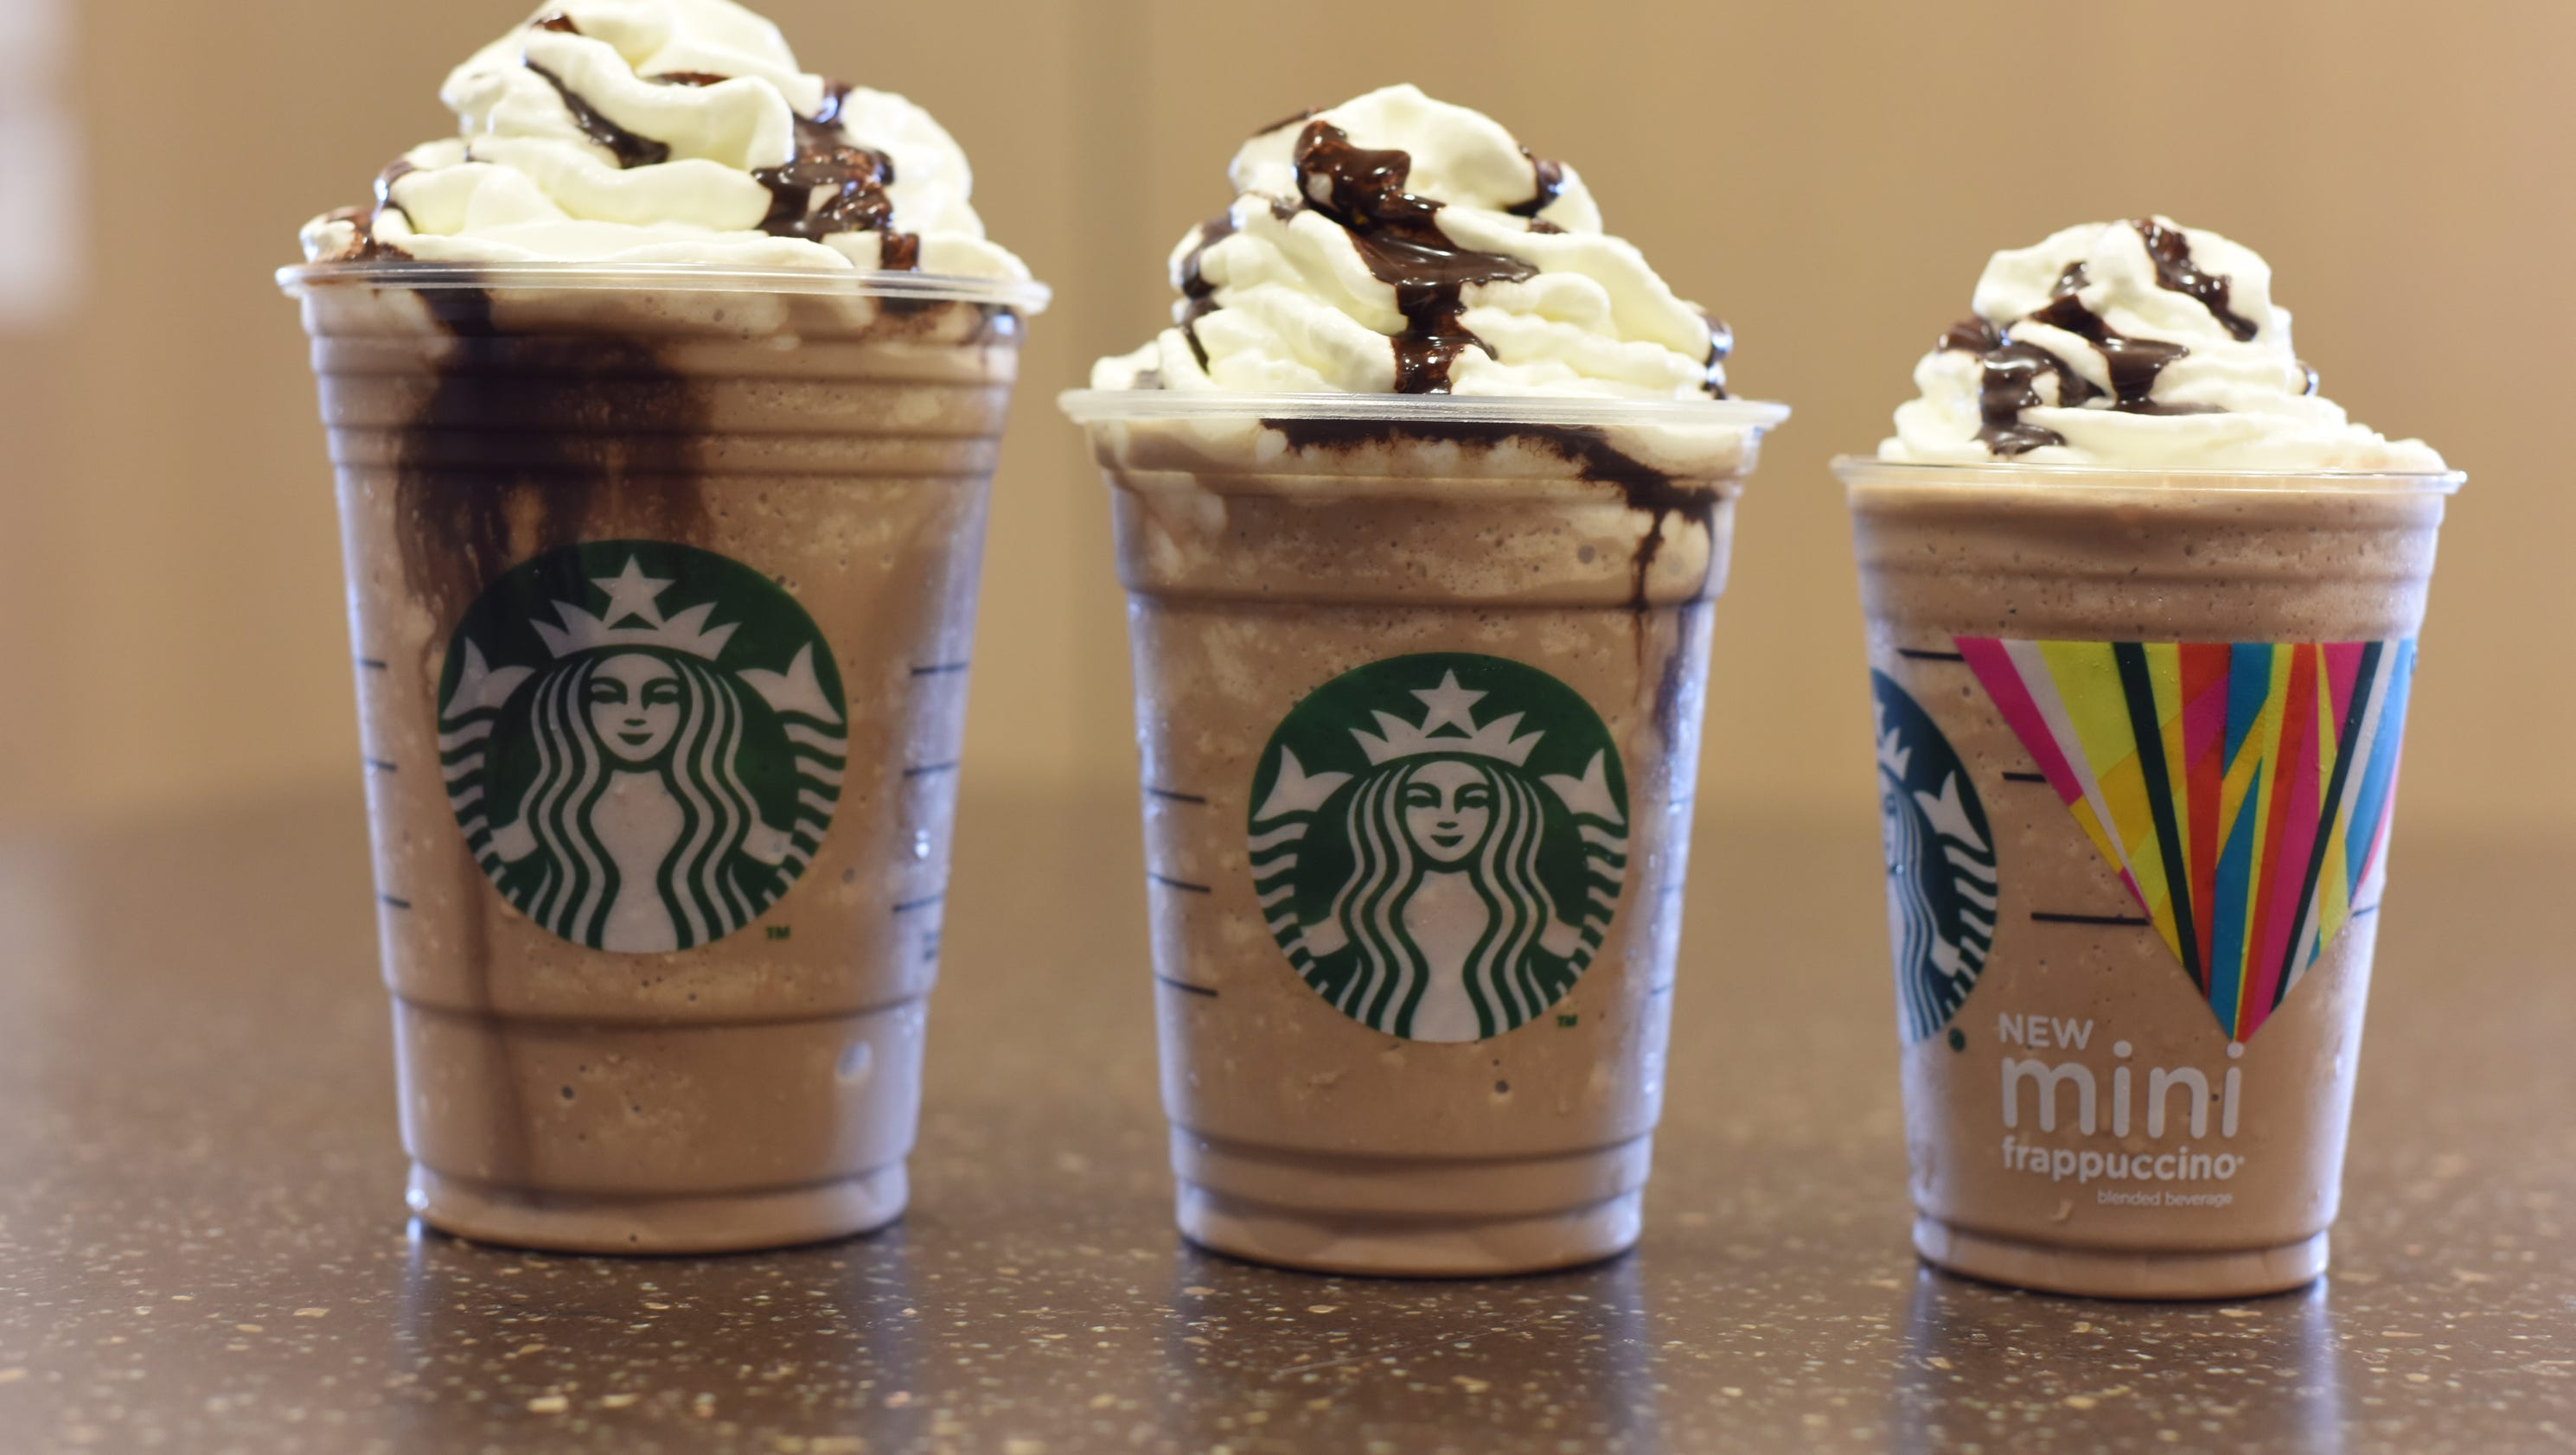 Tall City Delivery >> Starbucks rolls out 'Mini Frappuccino'